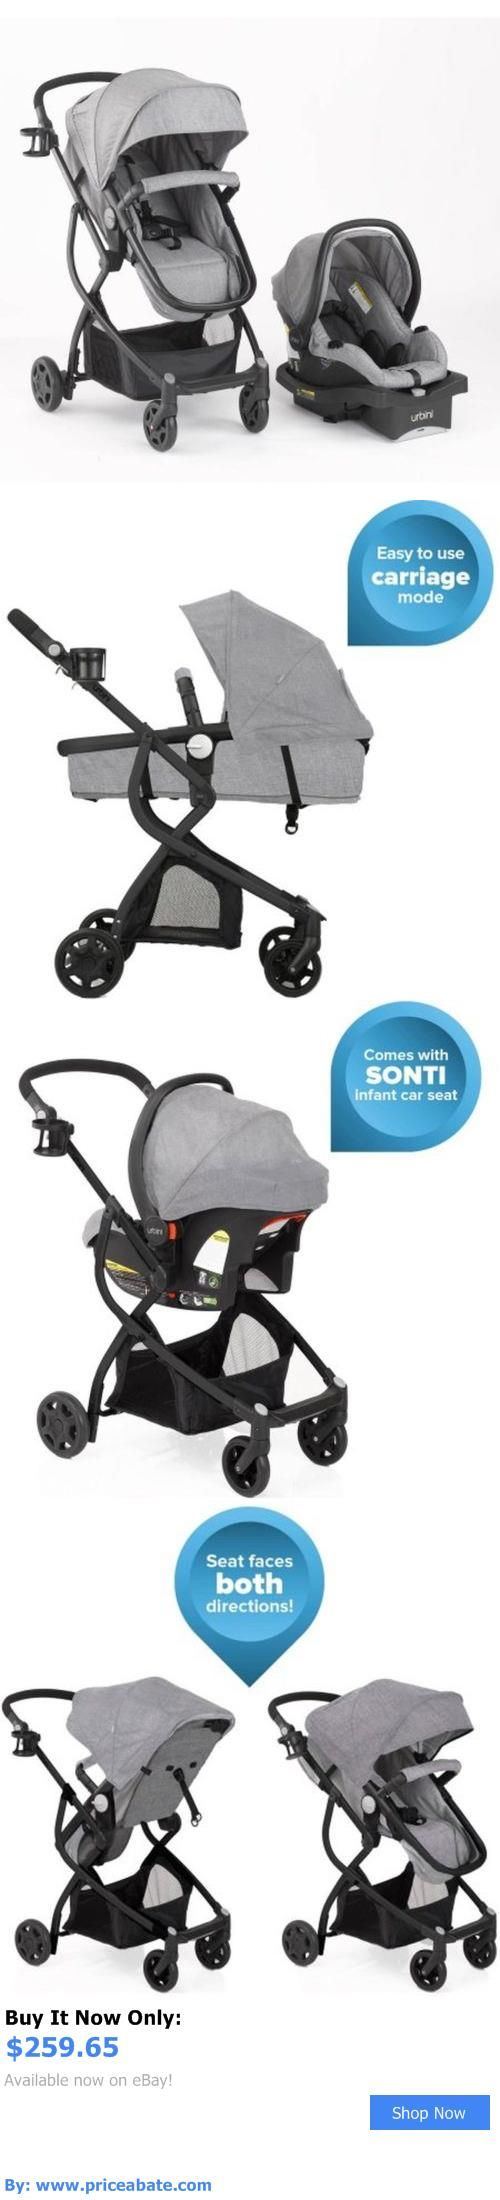 baby And kid stuff: 3 In1 Baby Stroller Car Seat Travel System ...